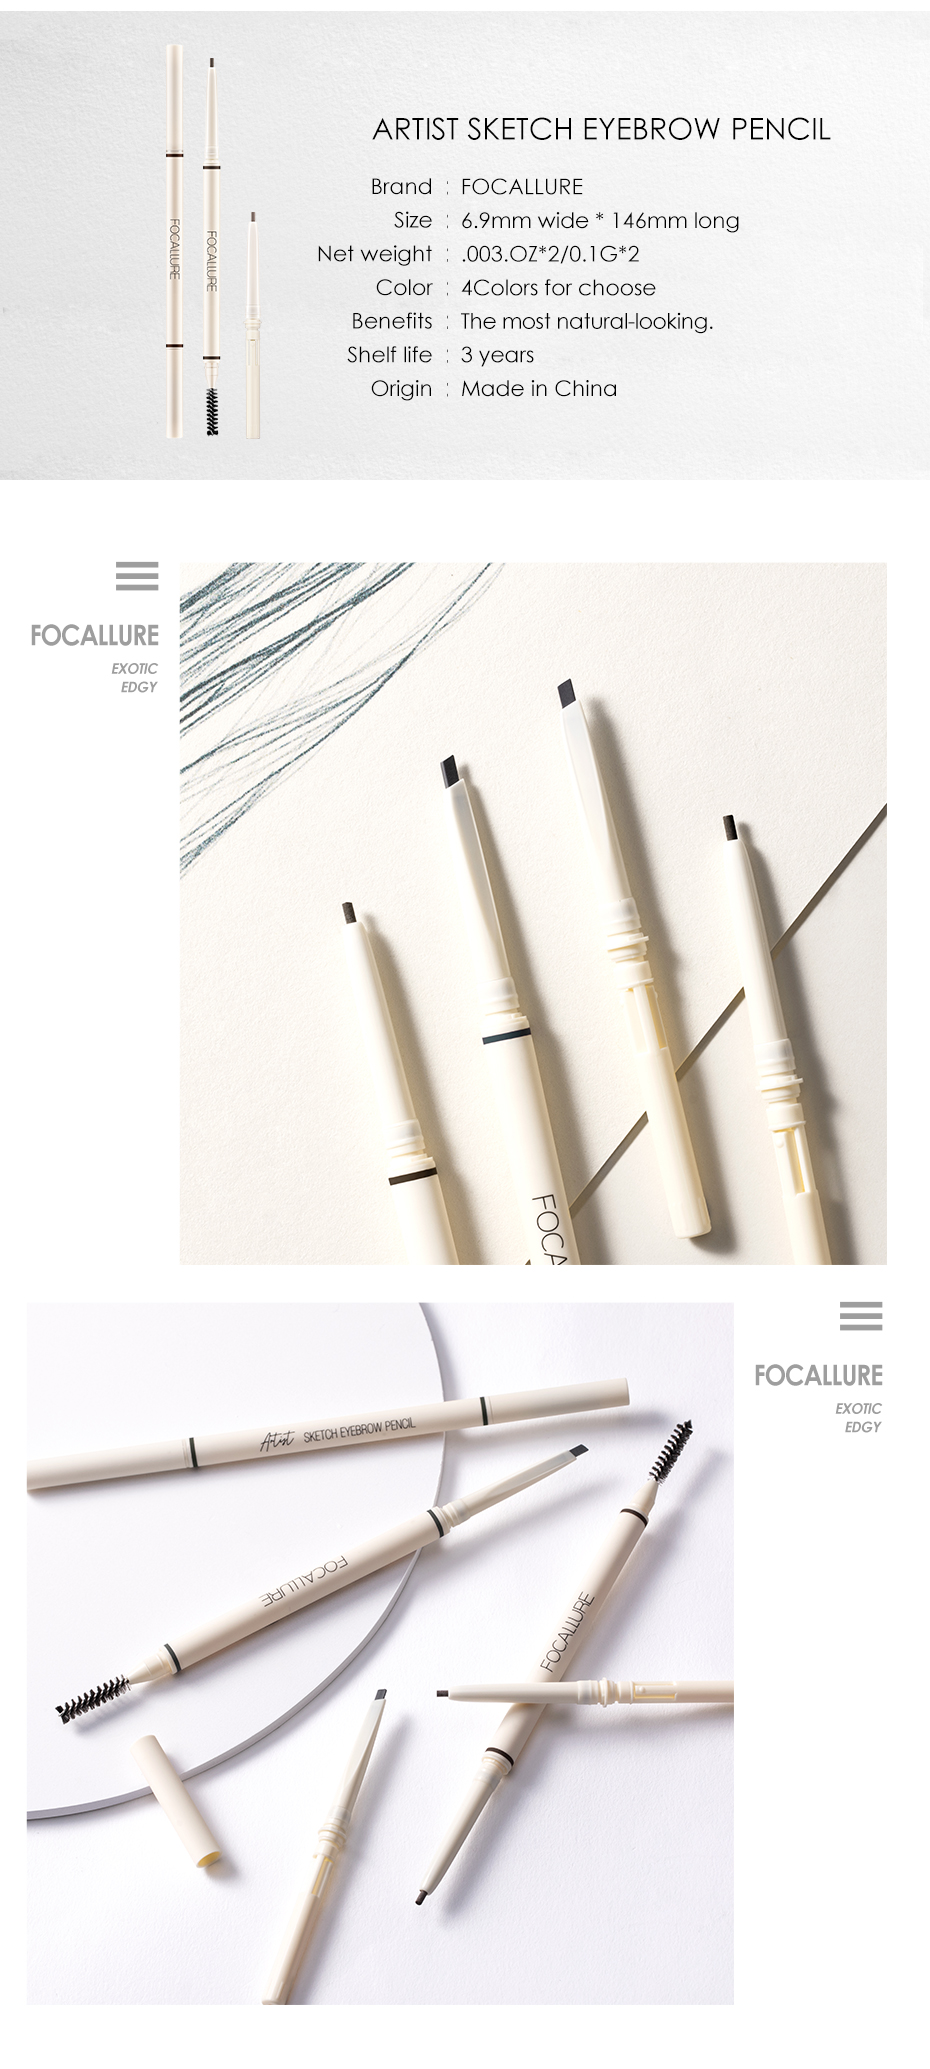 FOCALLURE Artist Sketch Eyebrow Pencil Waterproof Natural Long Lasting Tint 4 Color Brows Eye Makeup Eye Brow